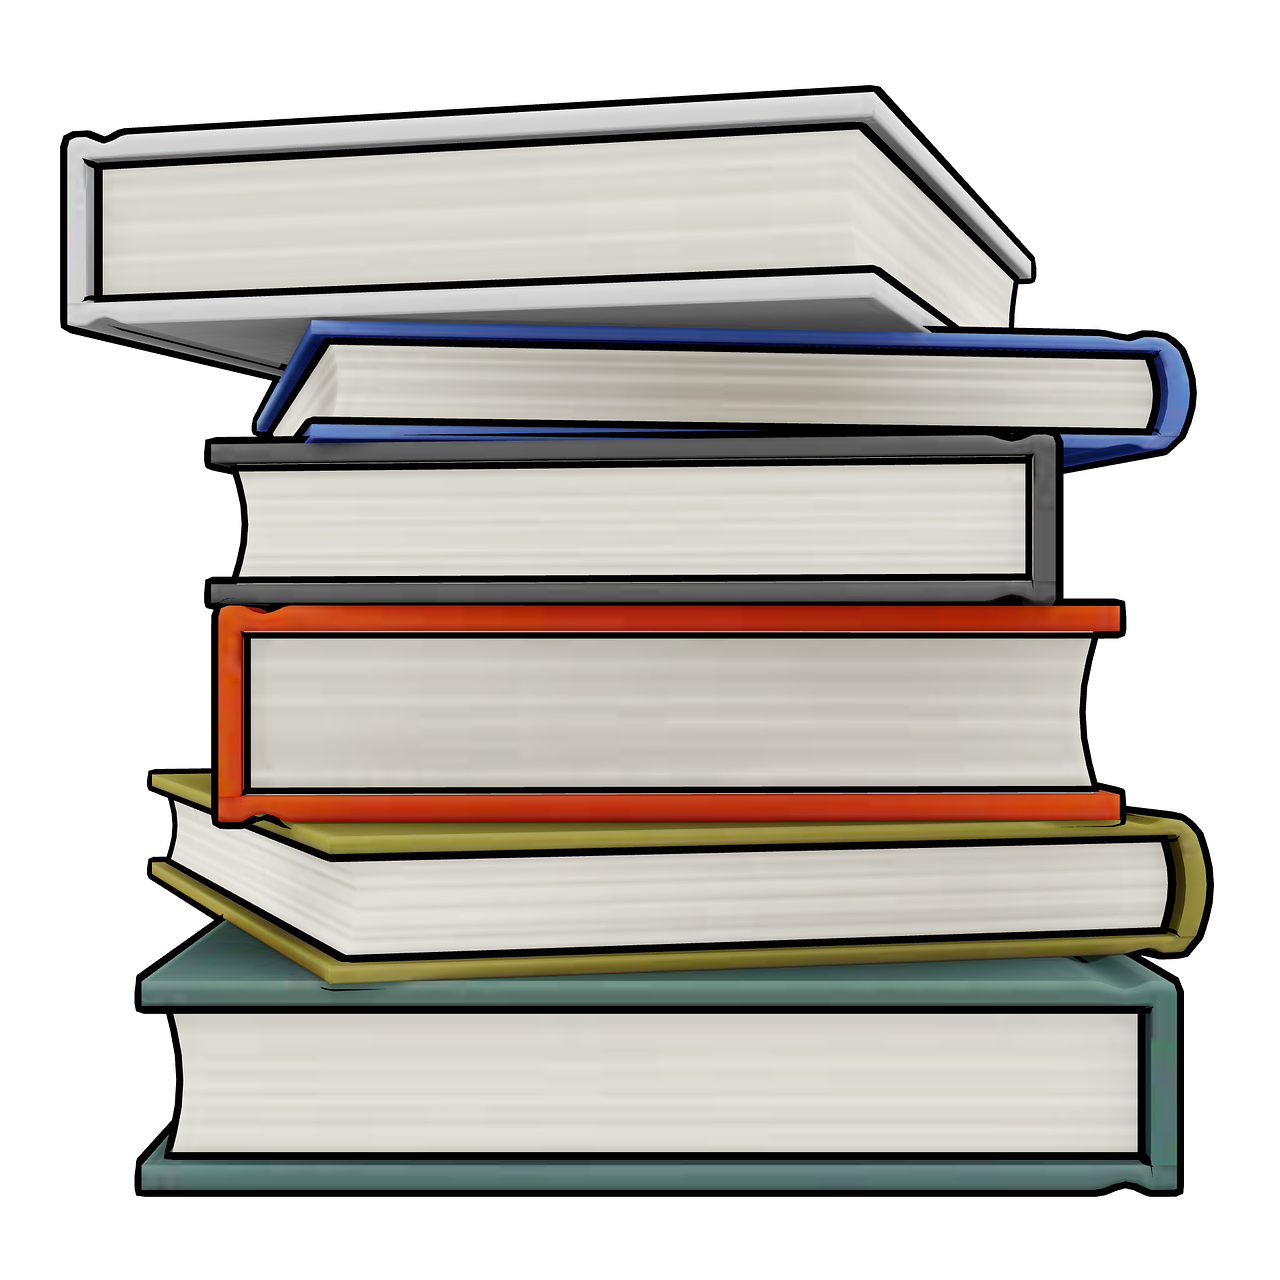 books, reading, reading book